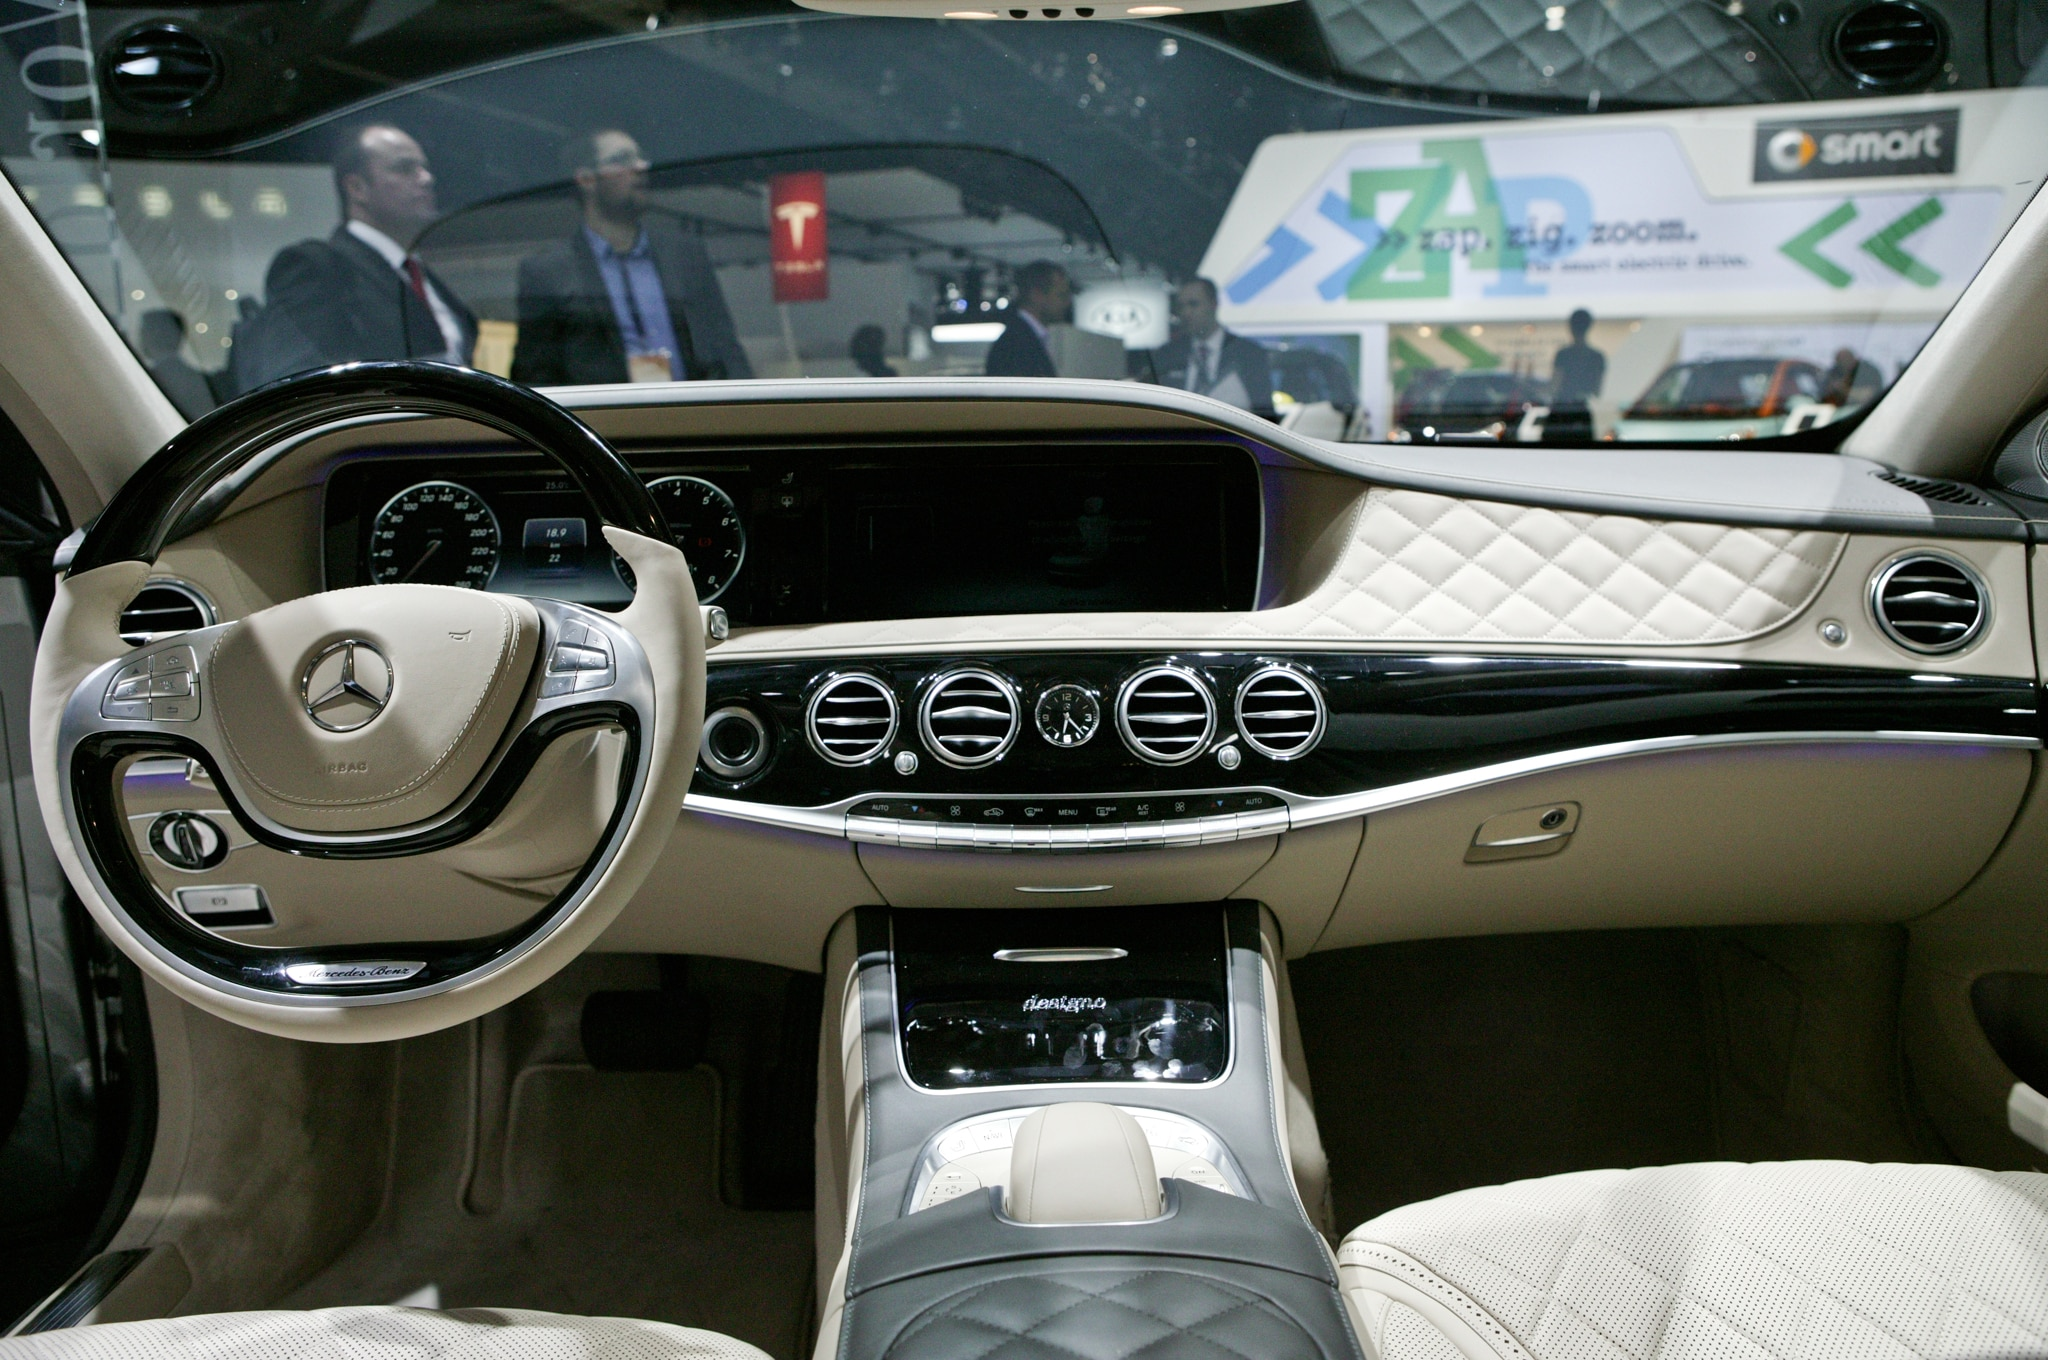 https://st.automobilemag.com/uploads/sites/11/2014/01/2015-Mercedes-Benz-S600-dashboard.jpg